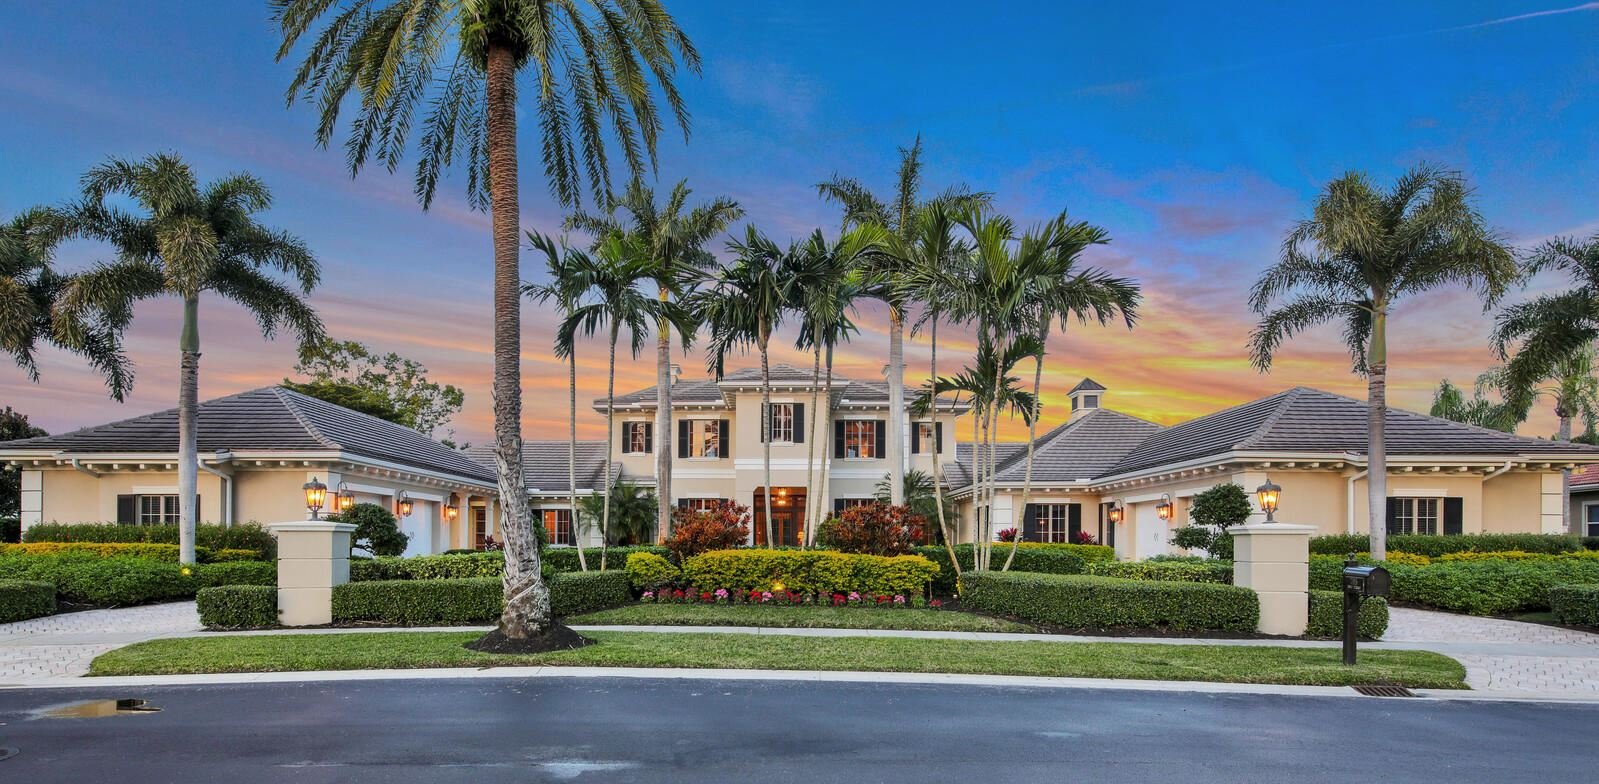 Ibis - Eagle's Isle Properties For Sale